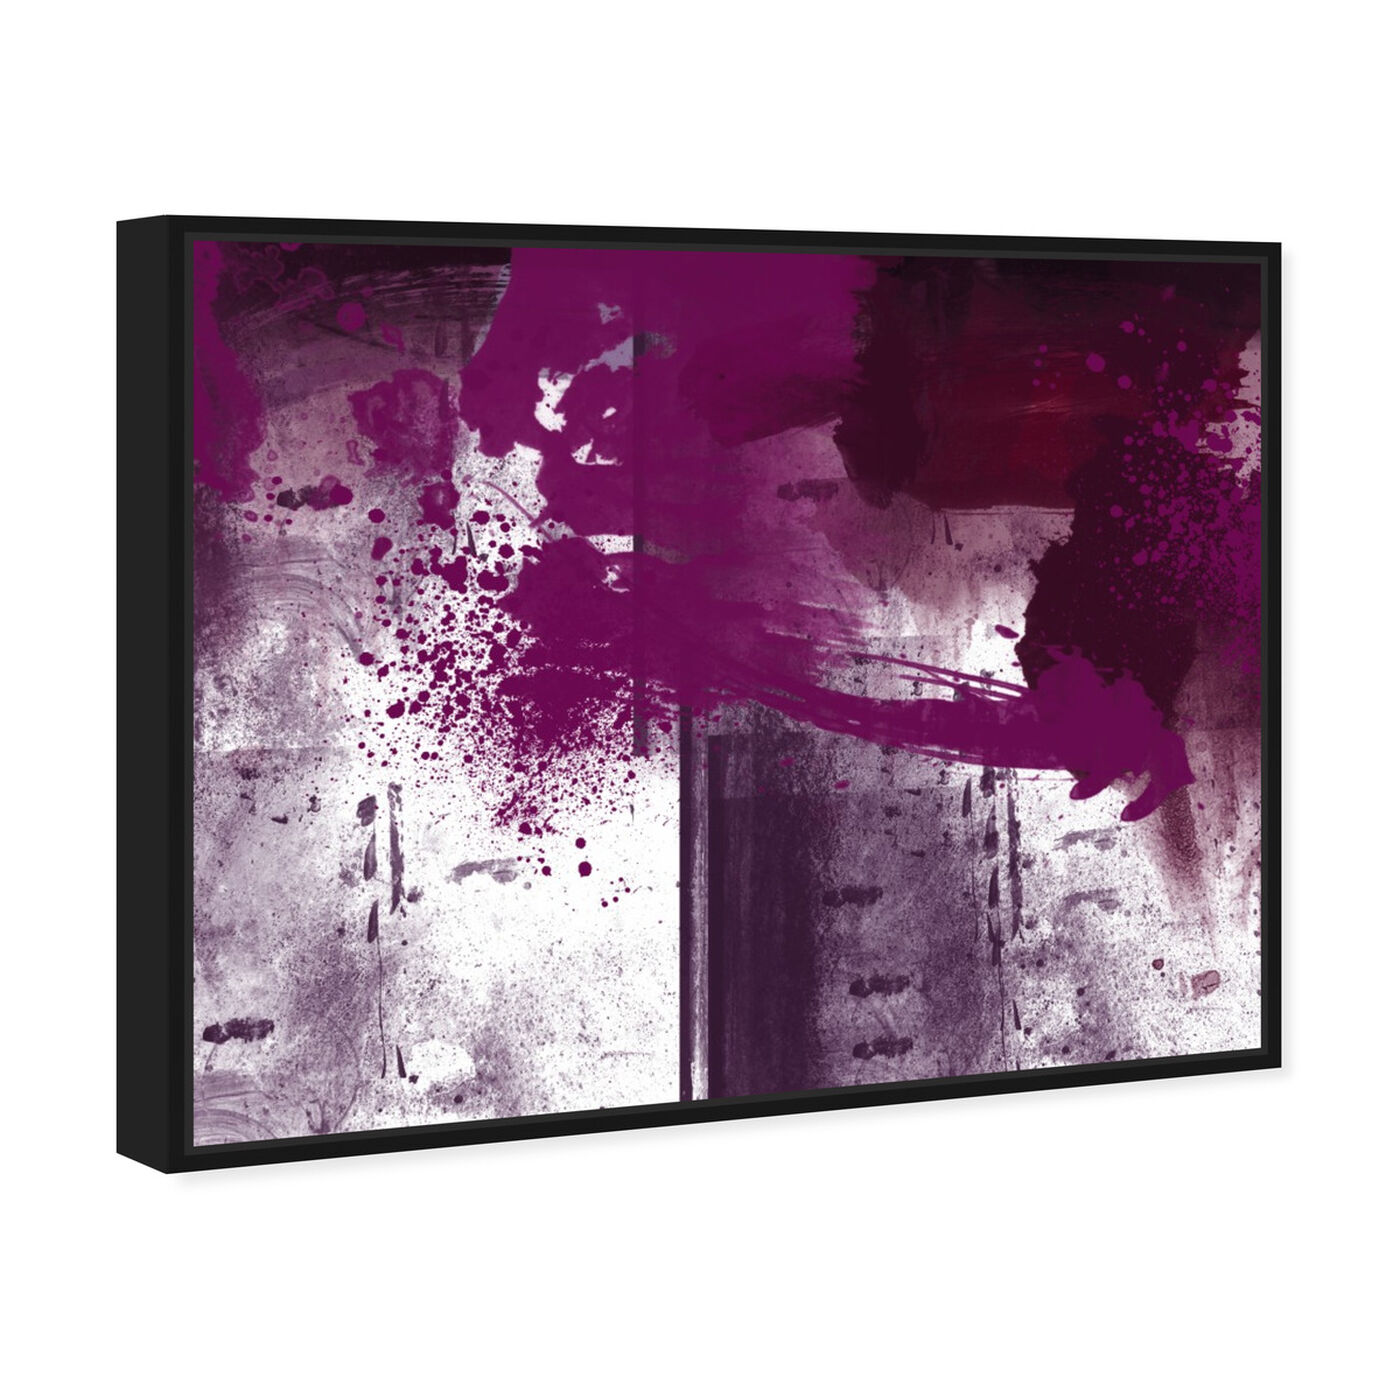 Angled view of Violet Substance featuring abstract and paint art.